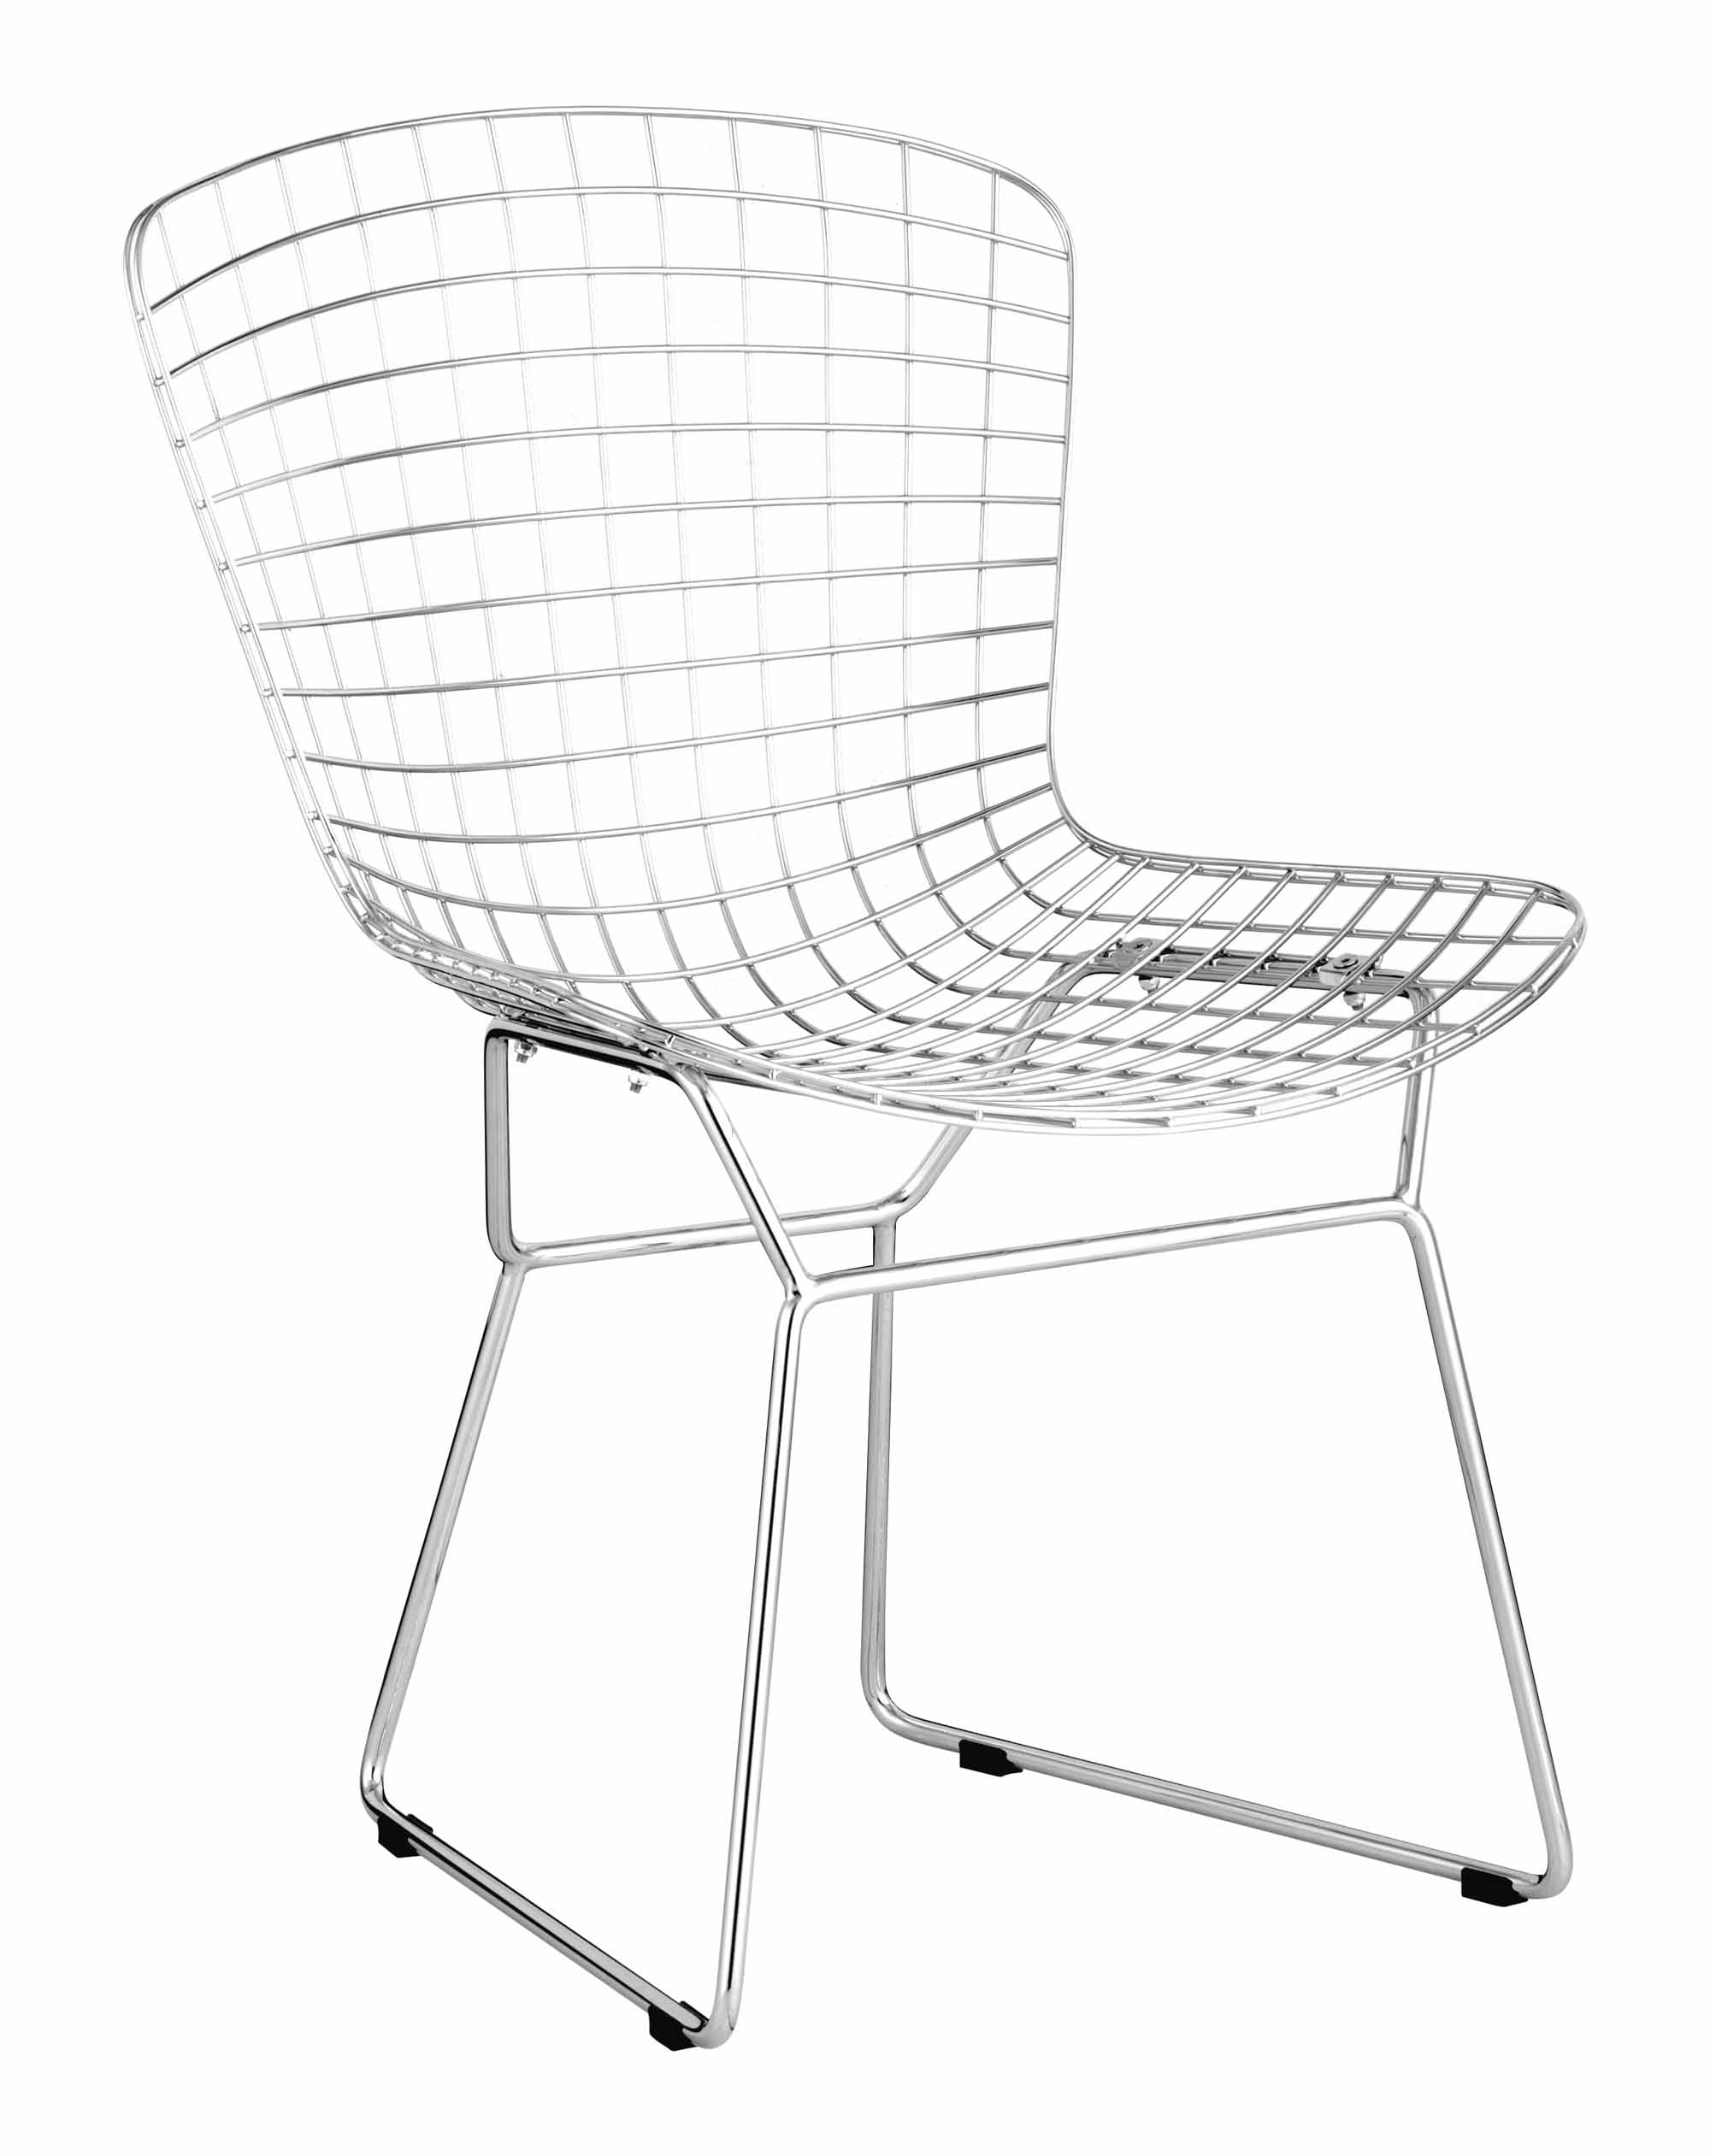 Groovy Wire Dining Chair Chrome Set Of 2 By Zuo Modern Caraccident5 Cool Chair Designs And Ideas Caraccident5Info